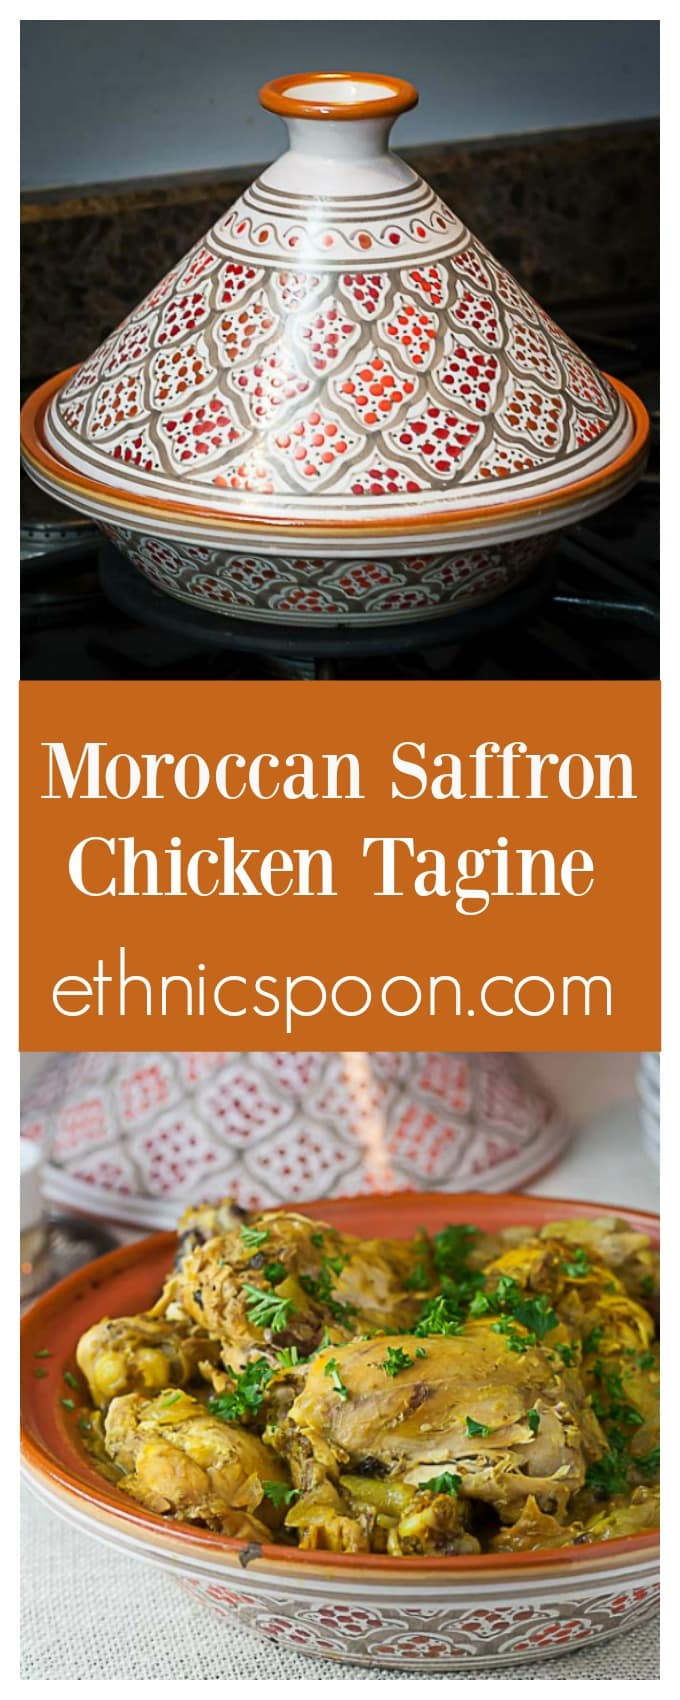 Morocccan saffron chicken is a really exotic yet easy one pot meal that can be made in a tagine or slow cooker.   ethnicspoon.com